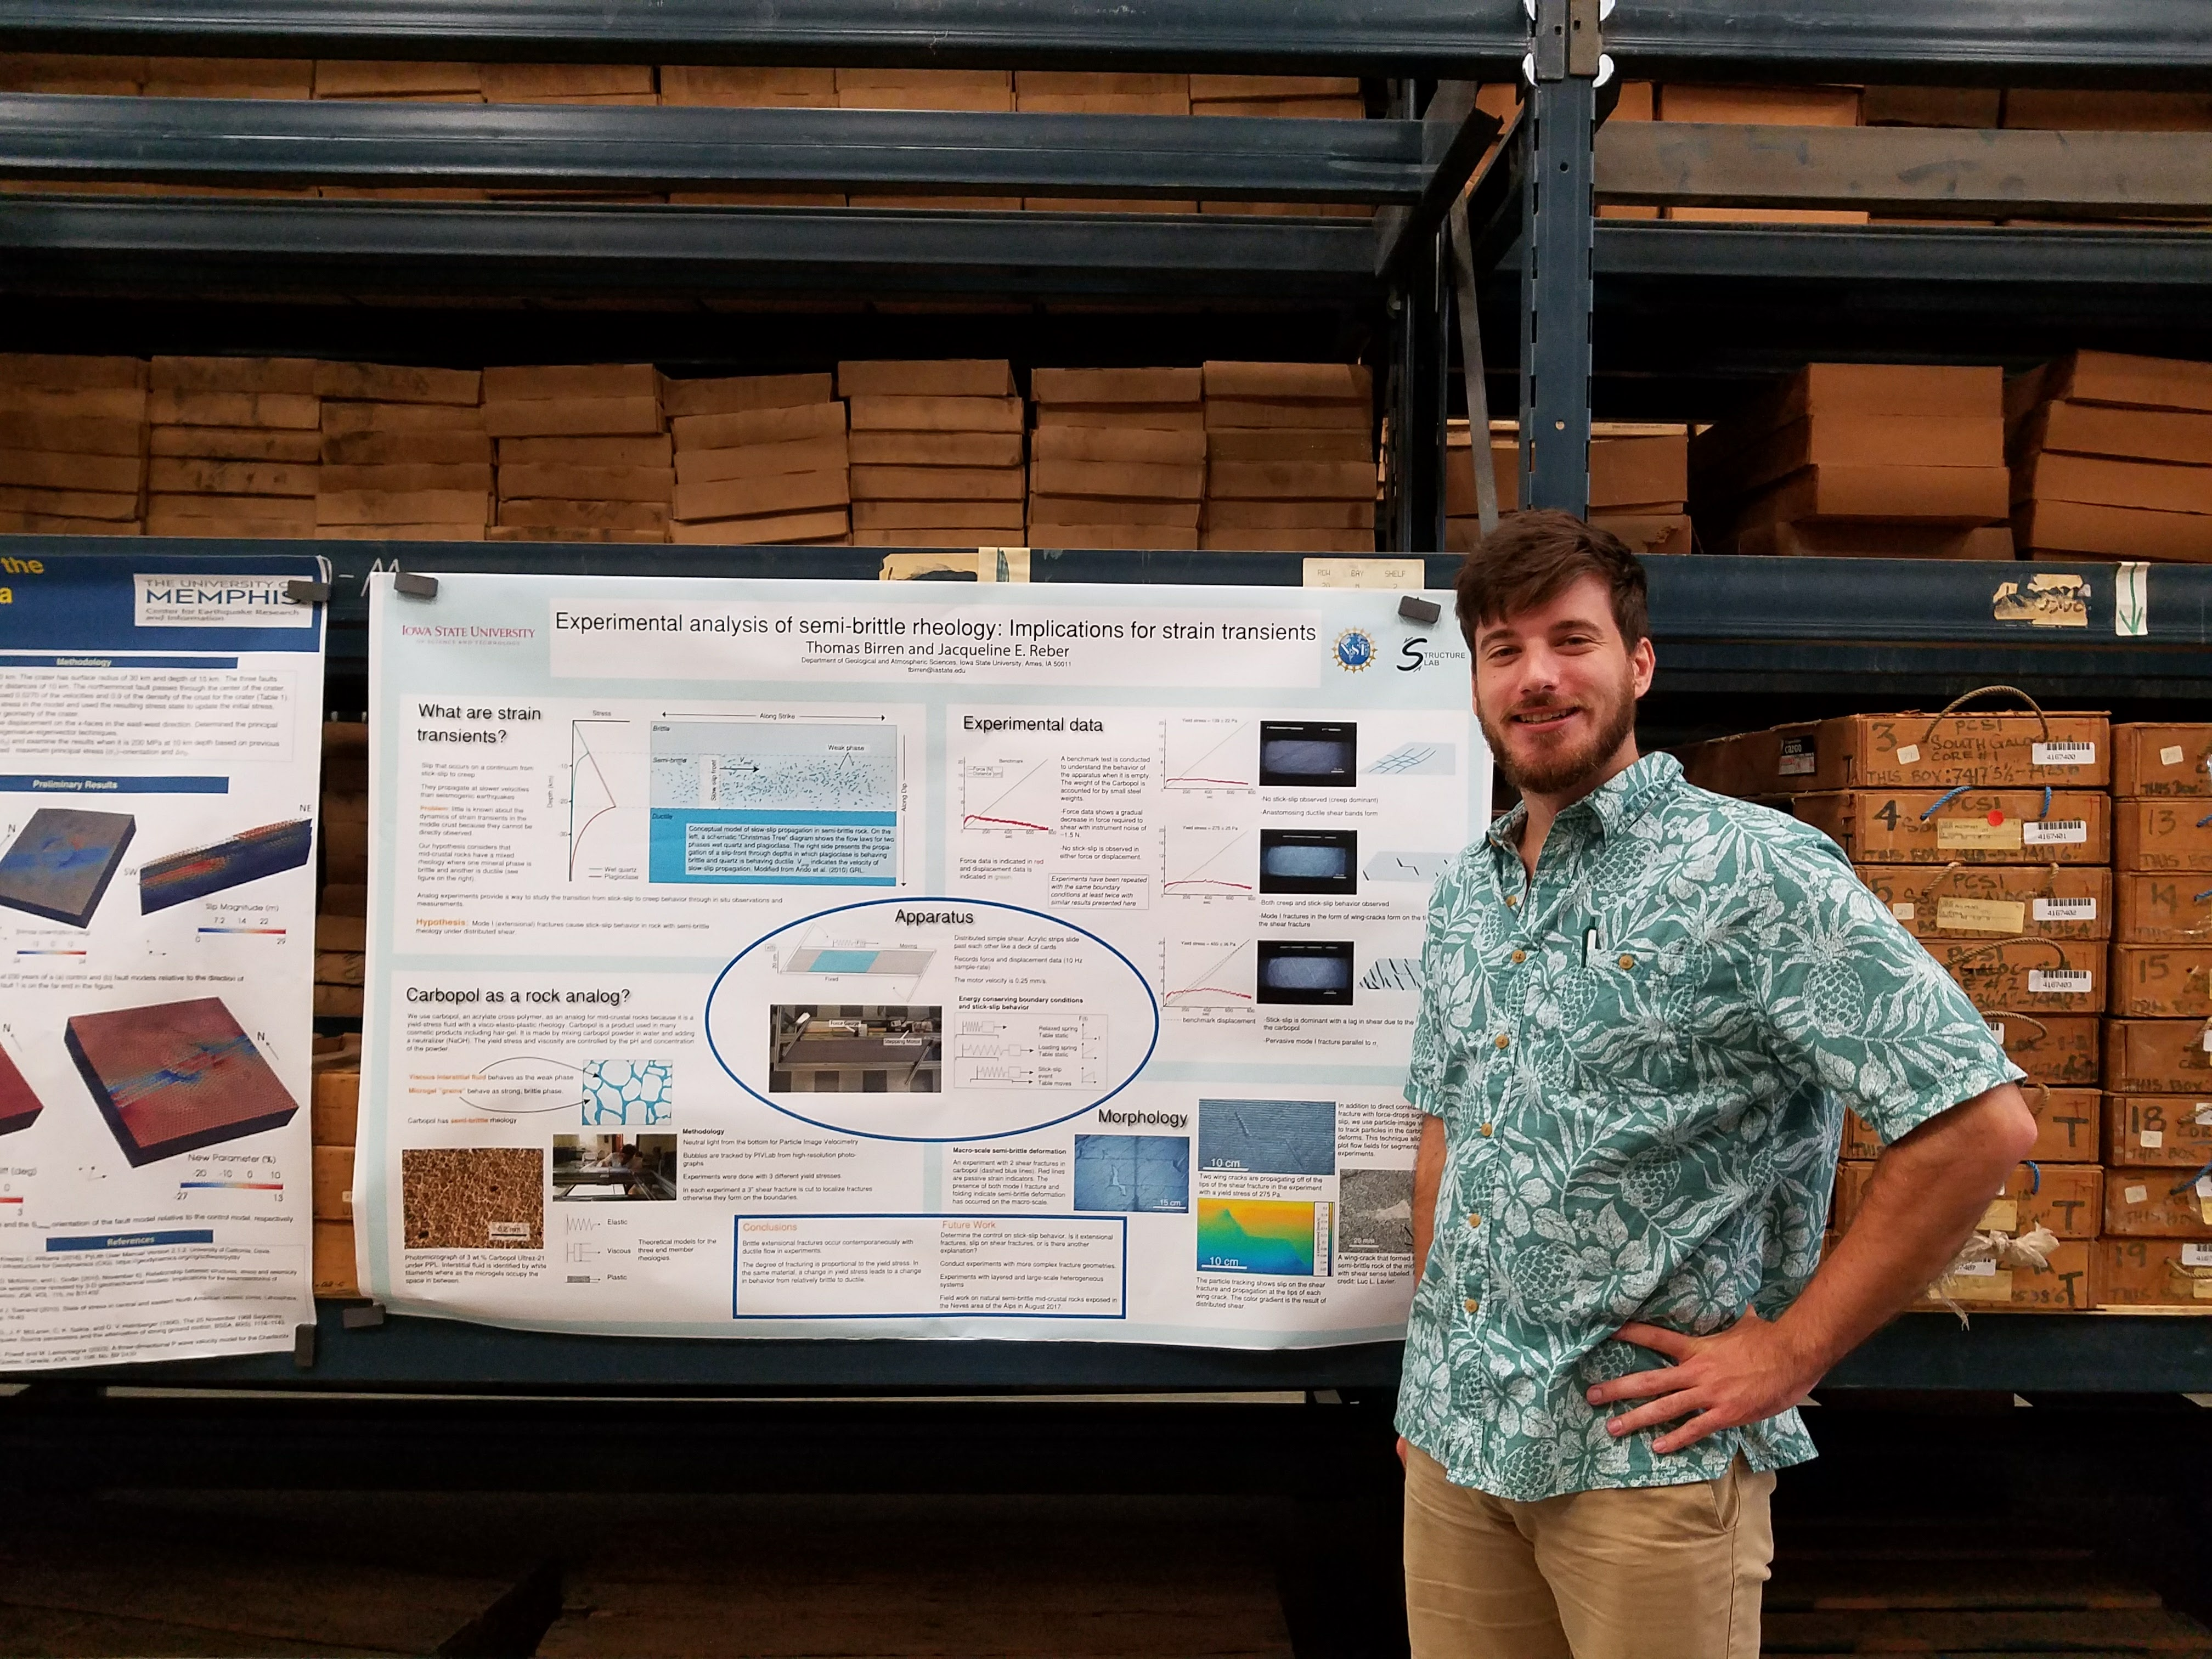 Tom with his poster on deformation of semi-brittle rocks/hair gel